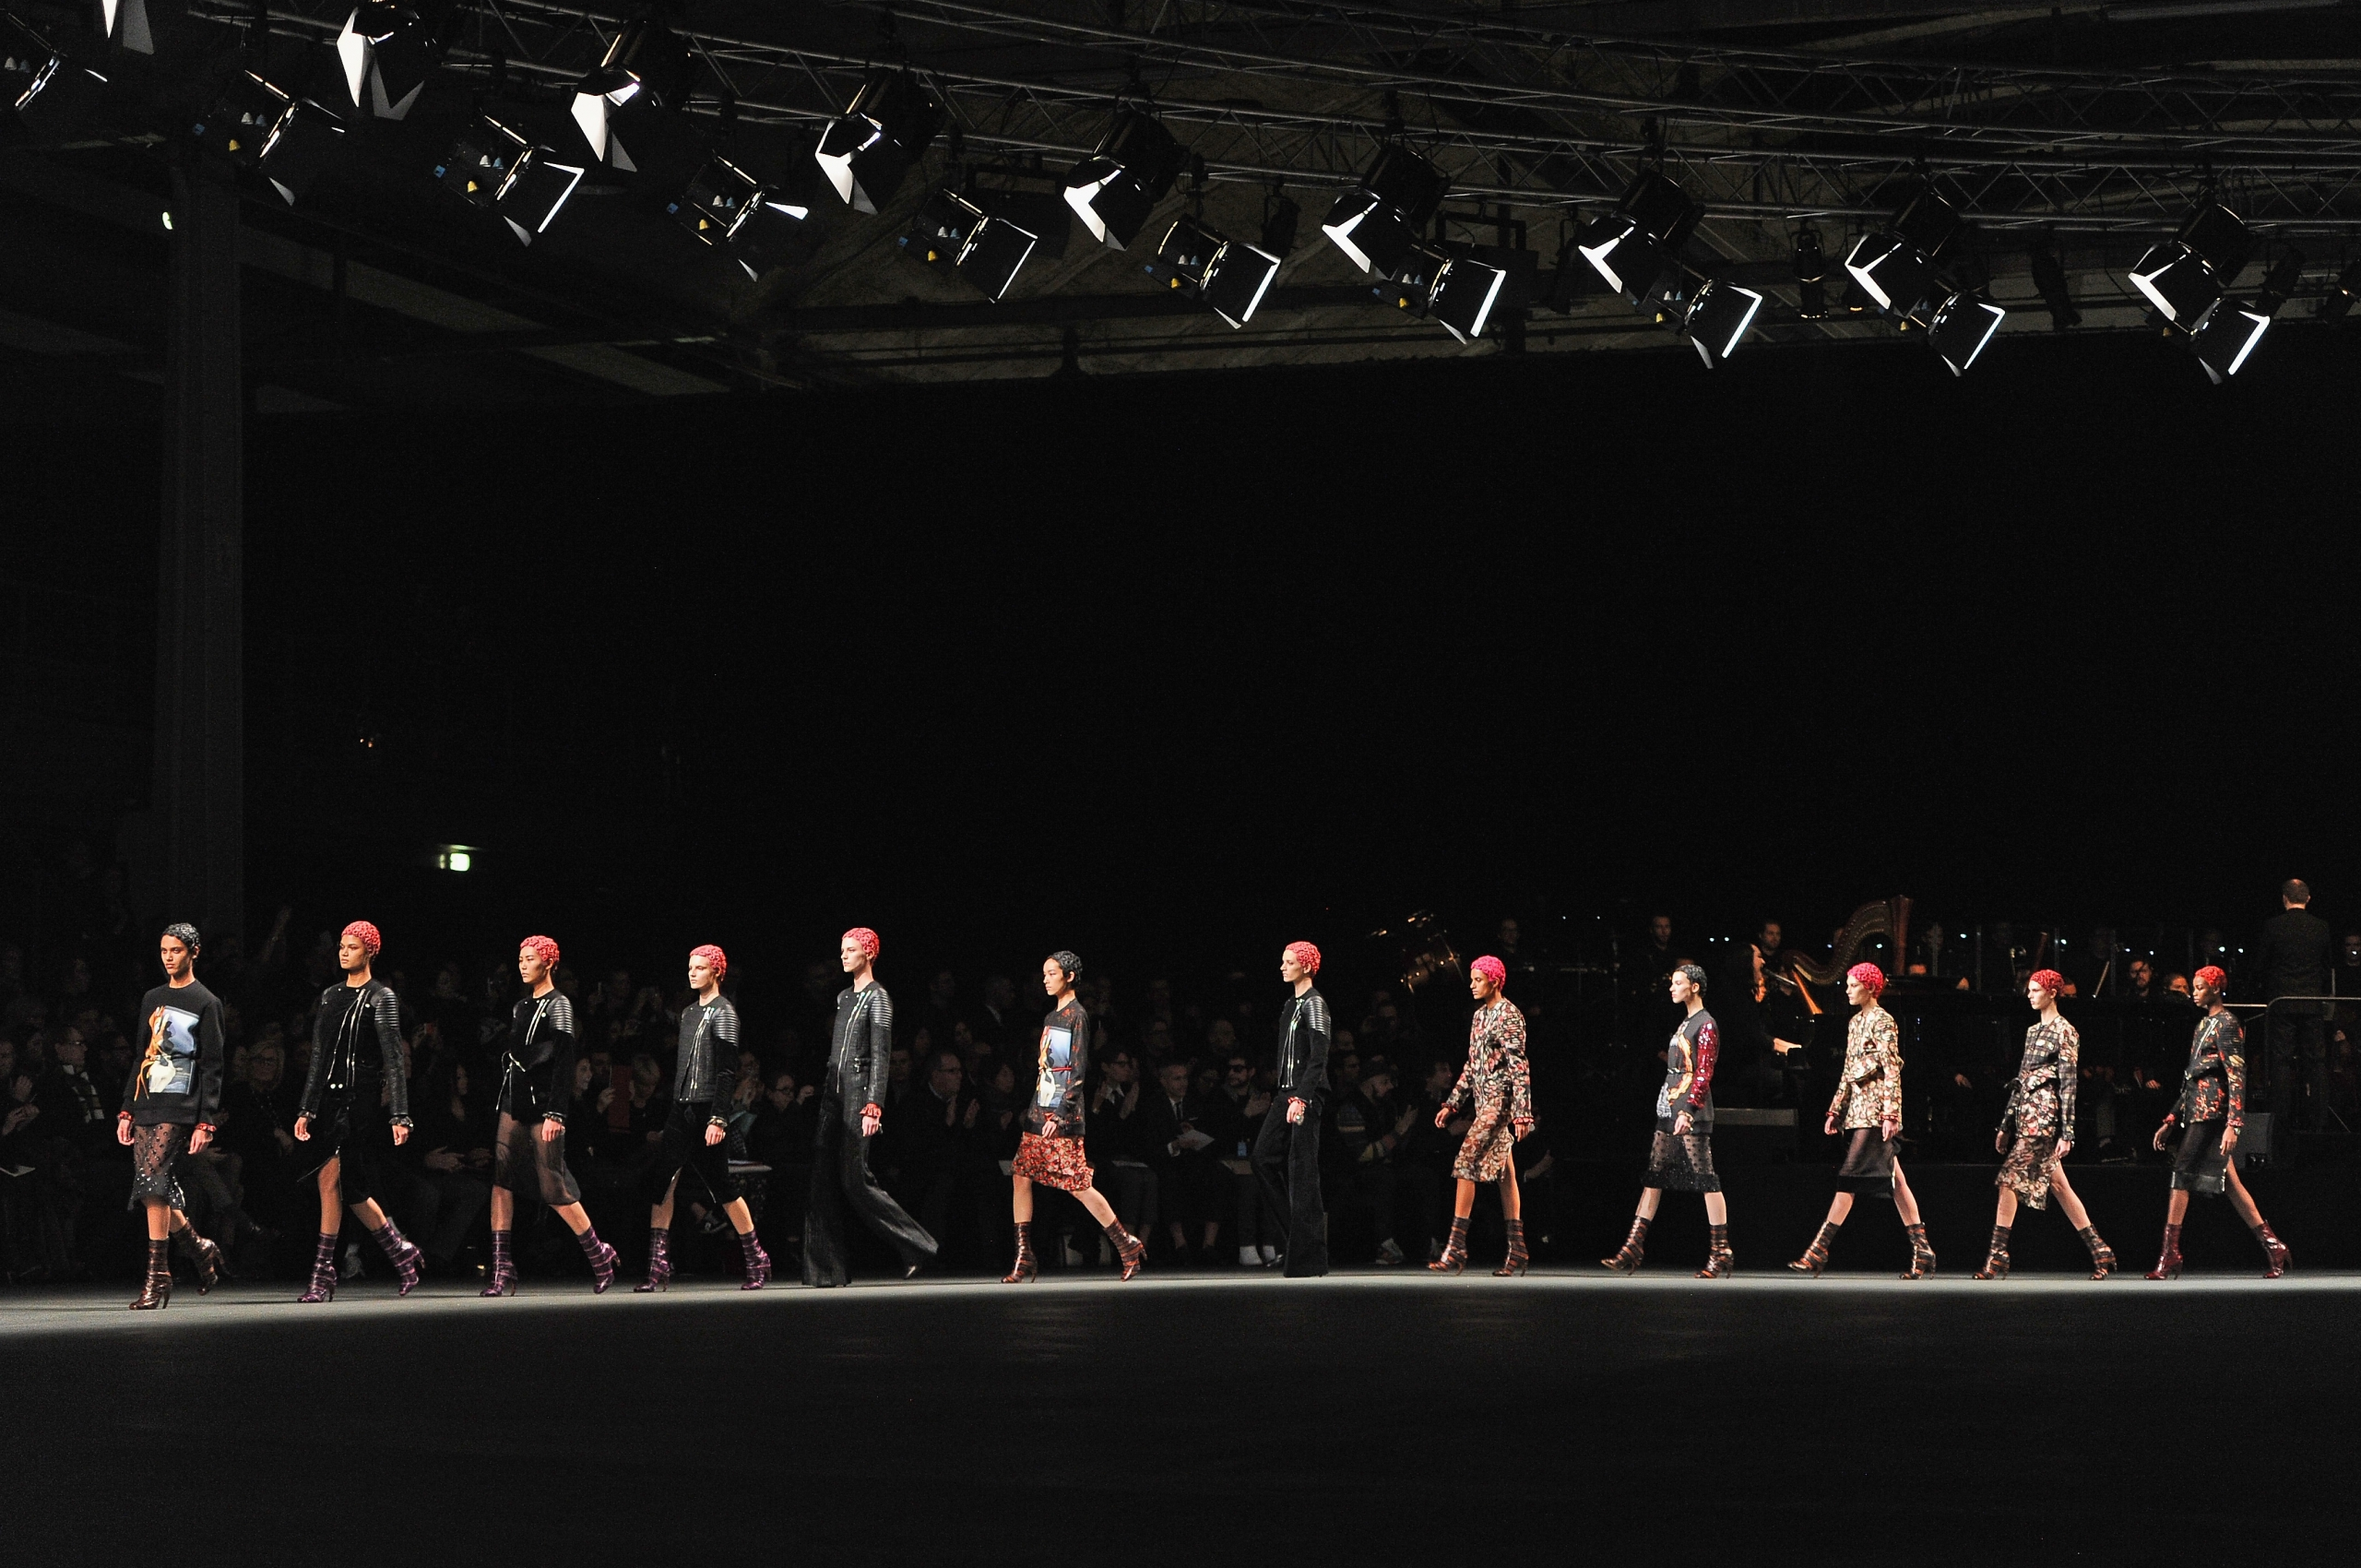 download Givenchy fashion show wallpapers and images 2560x1700